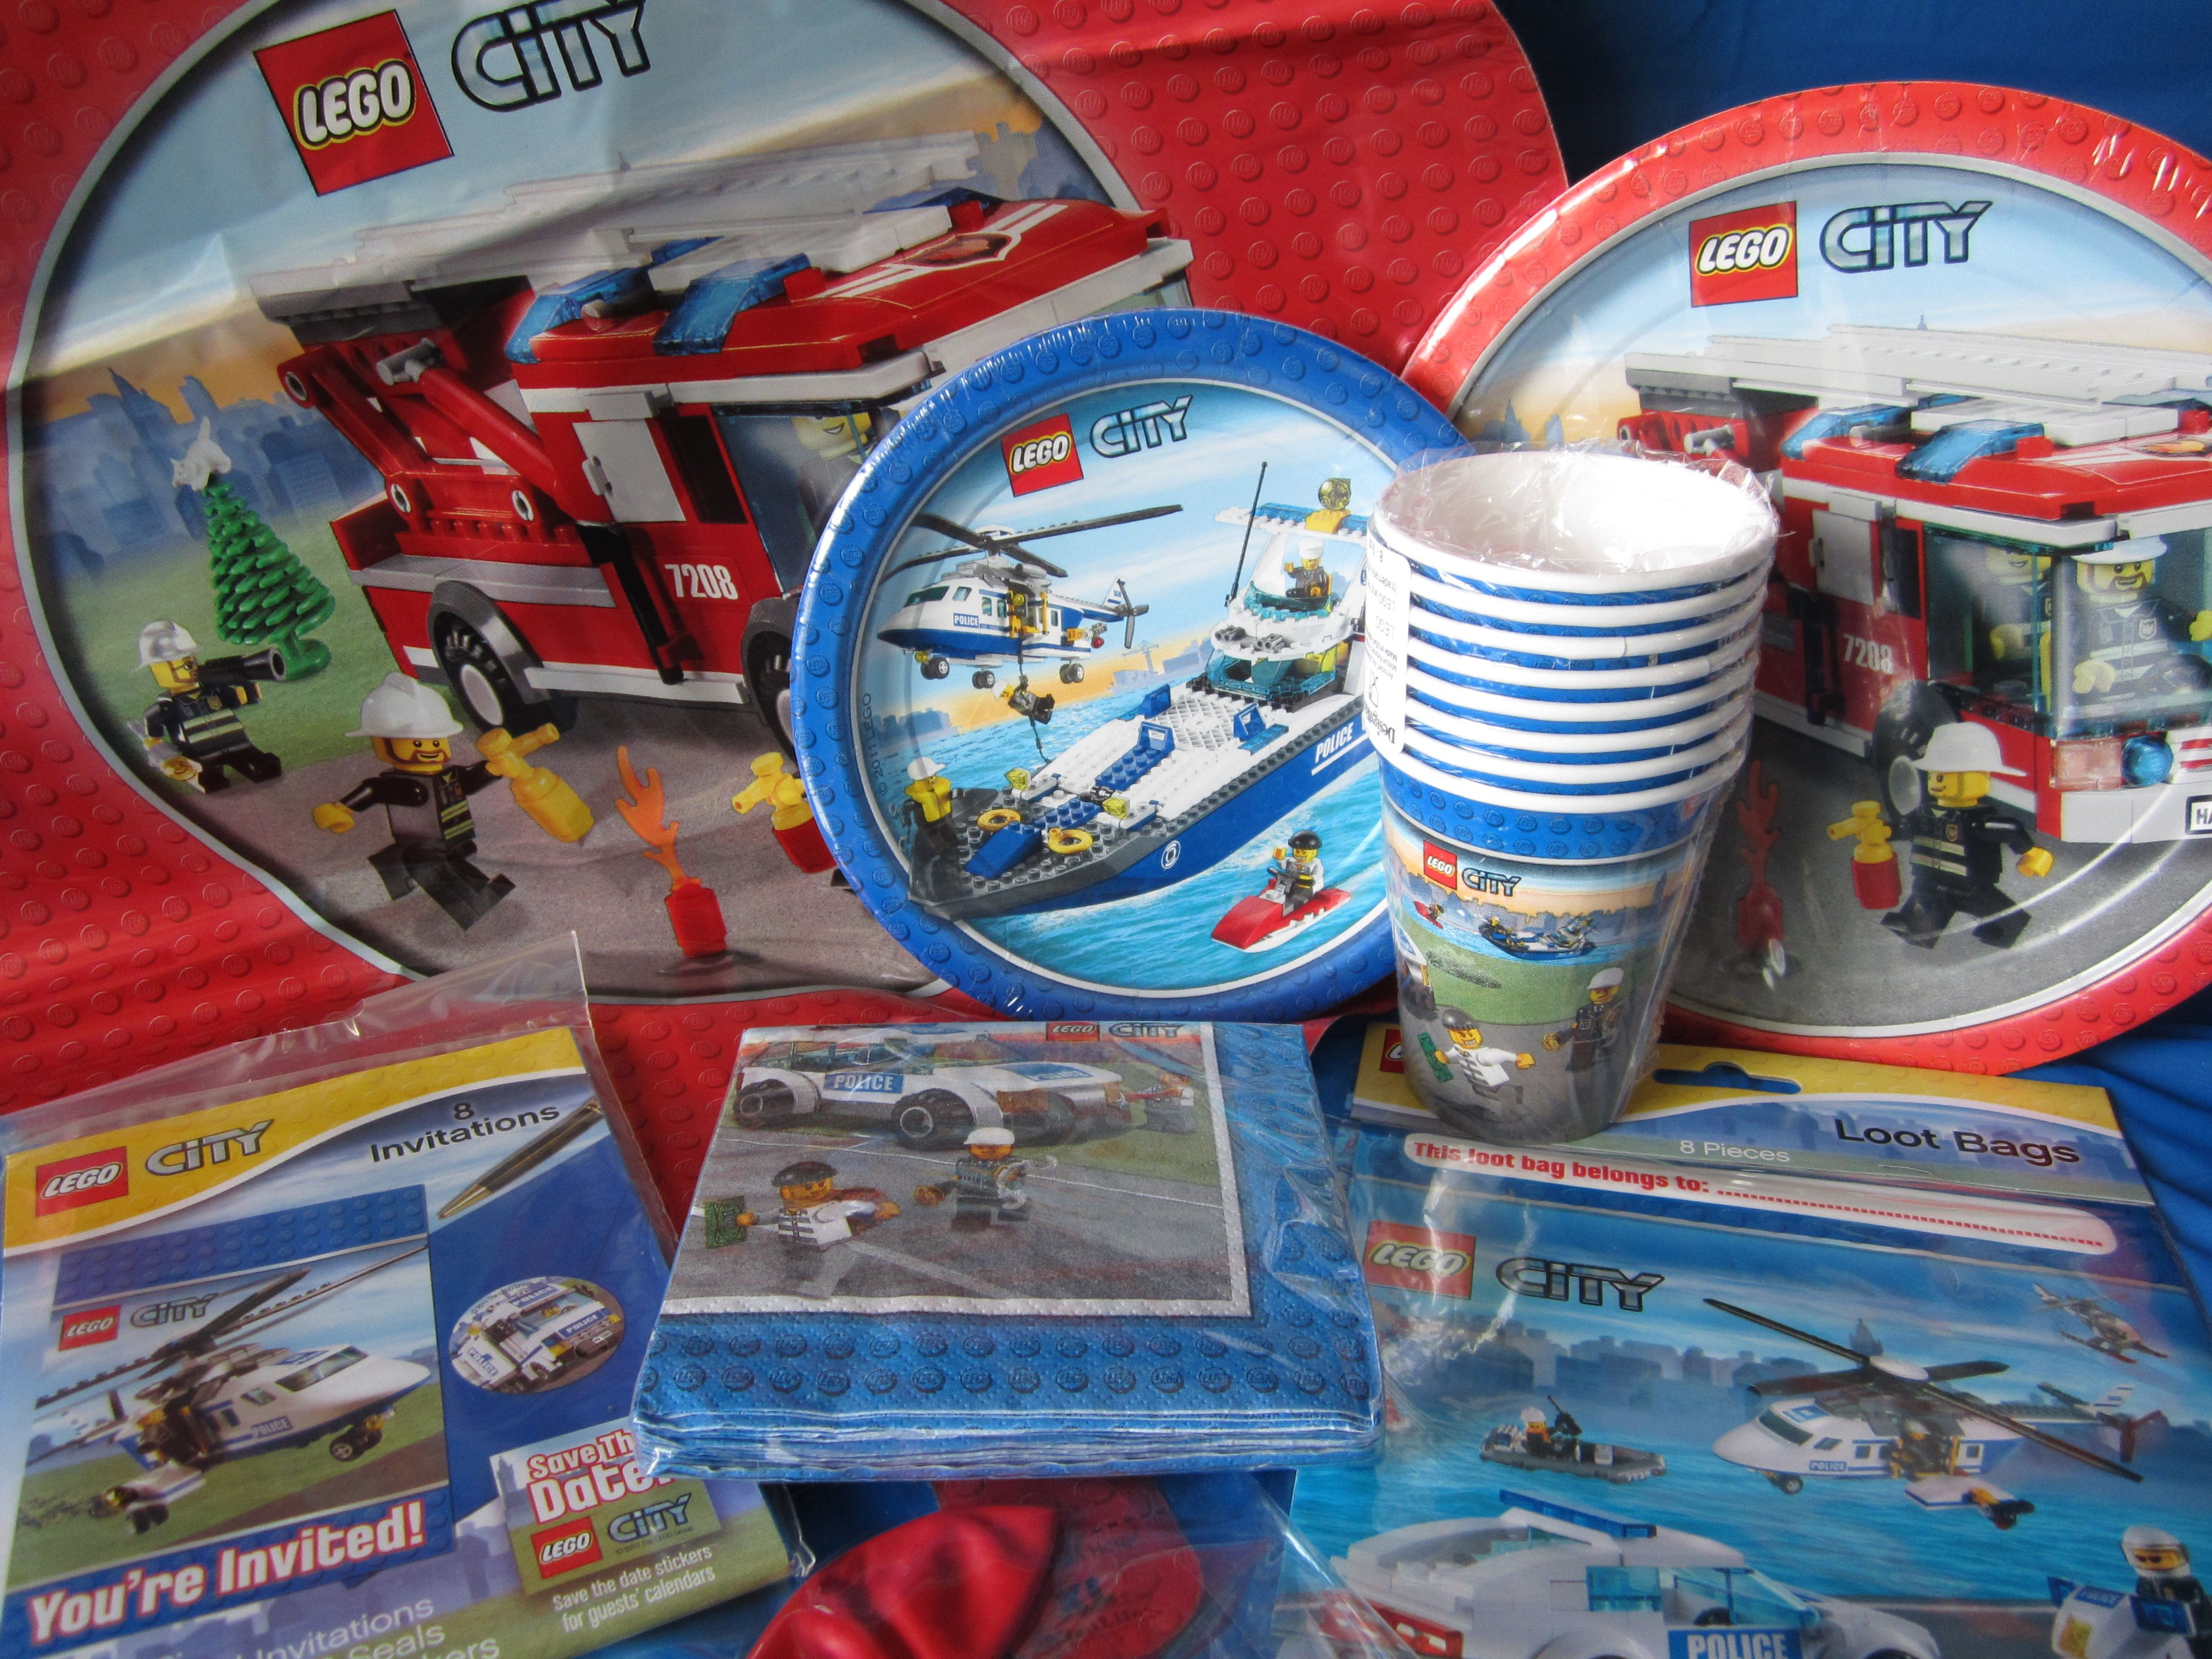 Lego City birthday party supplies | Party in style | Pinterest ...